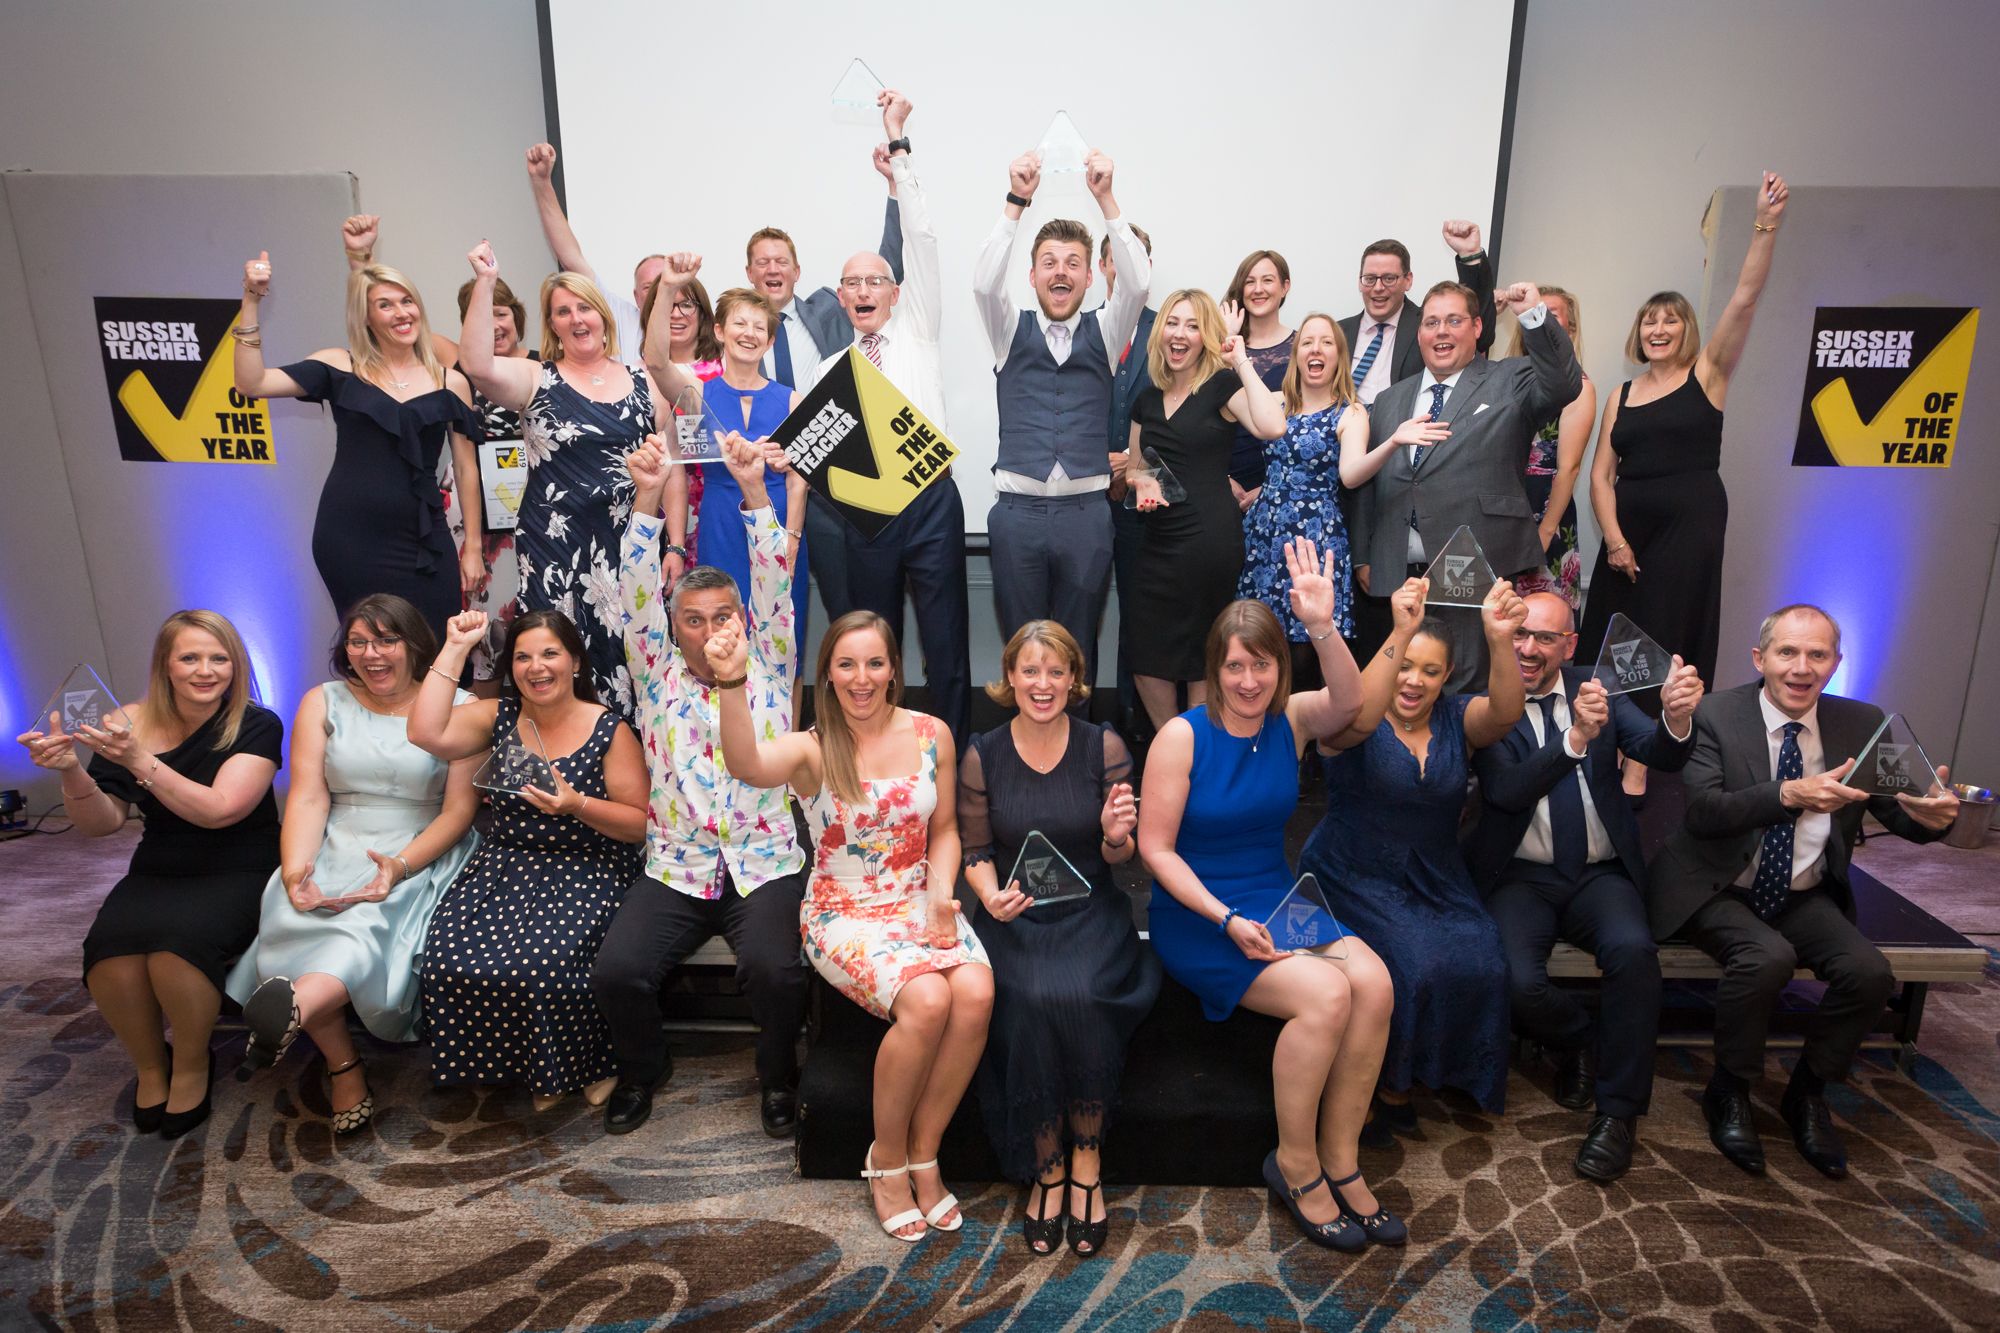 Sussex Teacher of the Year 2019